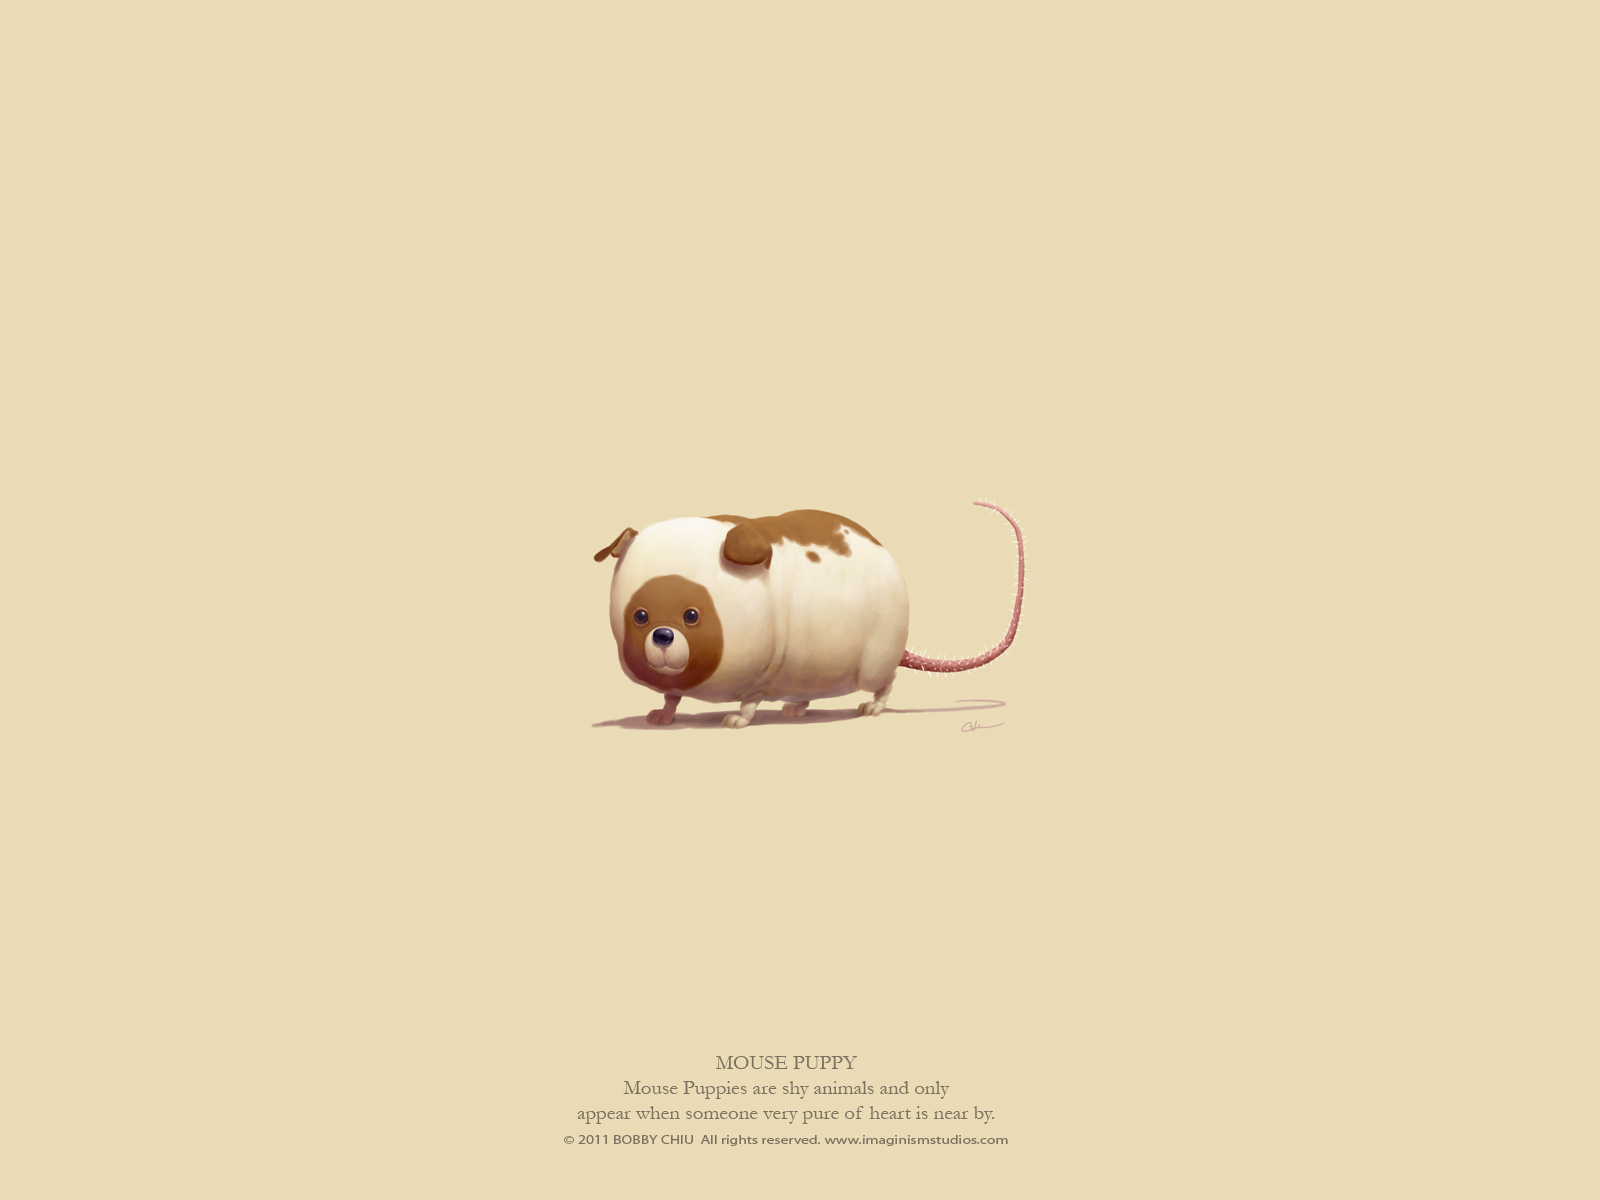 mouse_puppy_by_imaginism-d3g5vi7.jpg